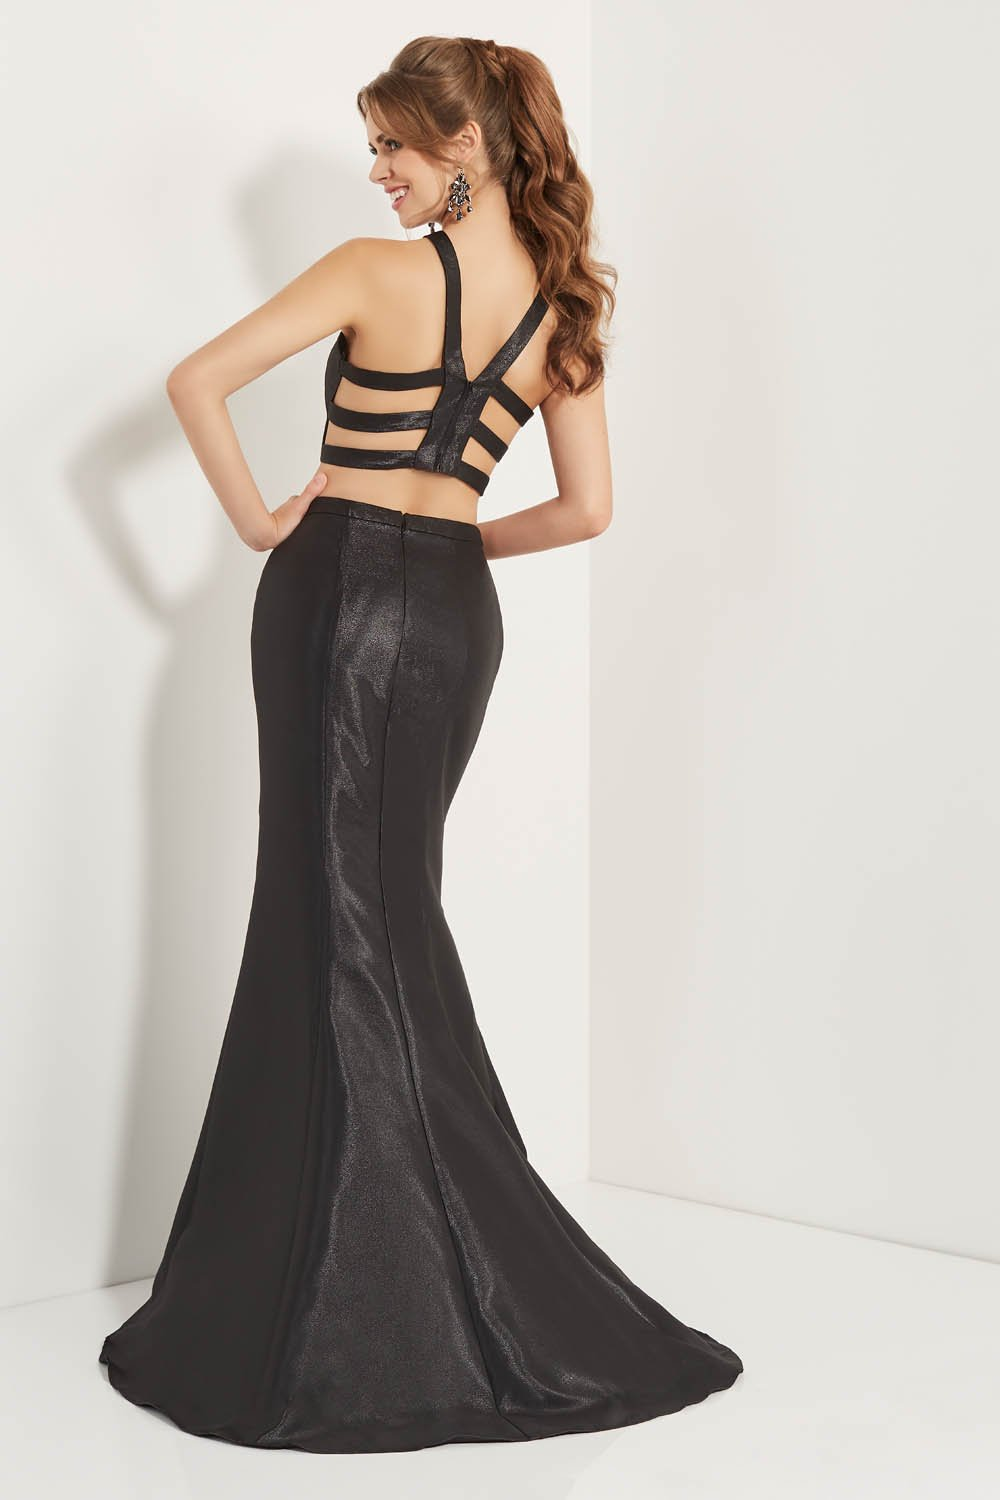 Studio 17 12739 Dress Formal Approach Studio 17 Prom Dresses